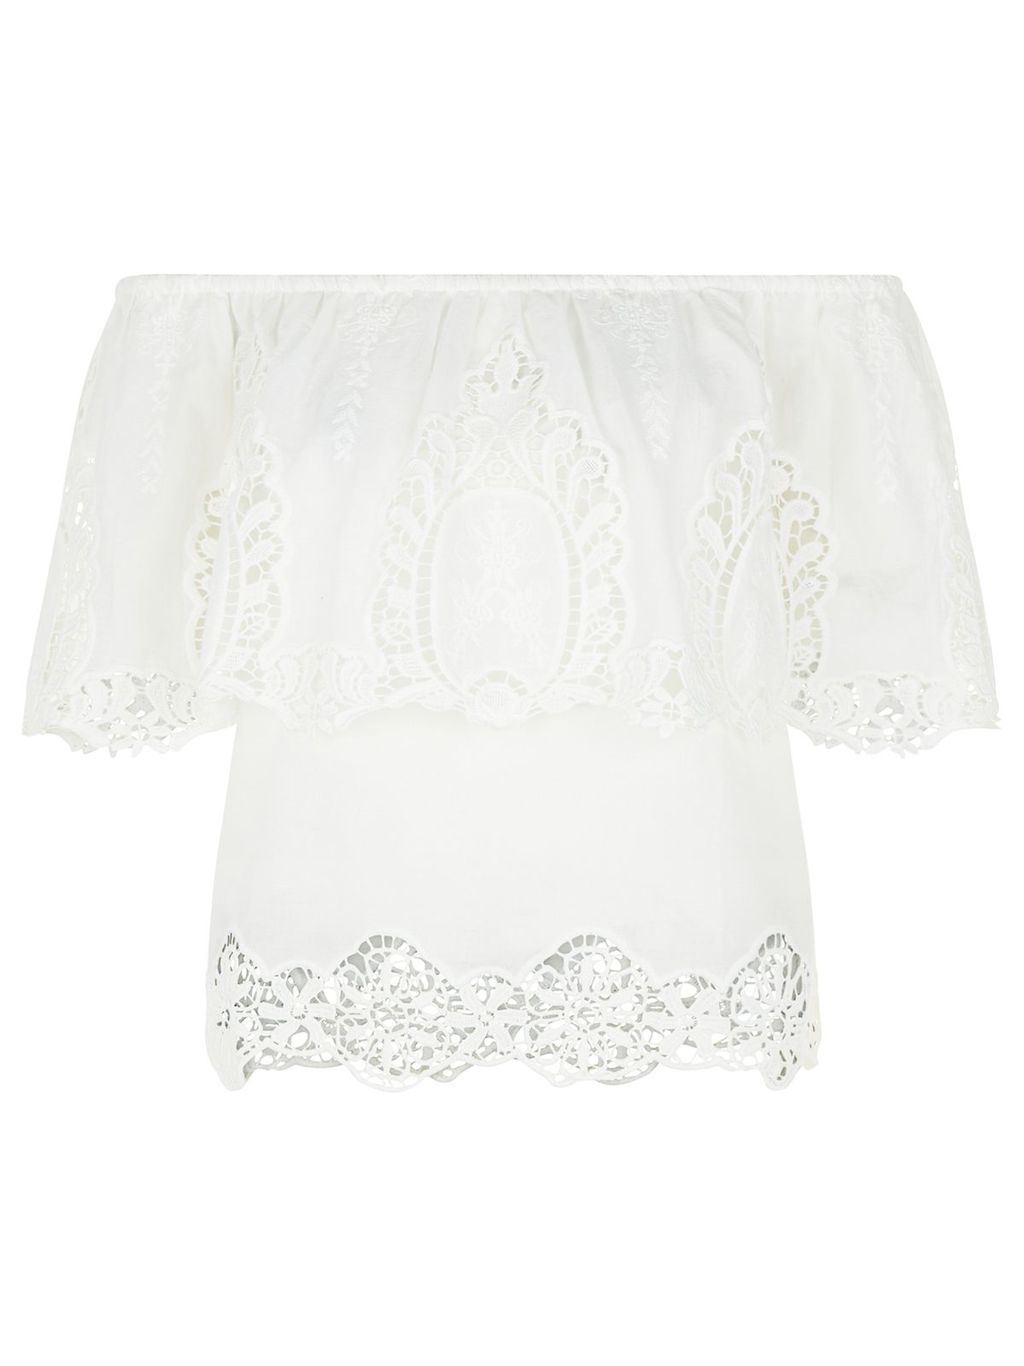 Marilyn Top, Ivory - neckline: off the shoulder; predominant colour: white; occasions: casual; length: standard; style: top; fibres: cotton - 100%; fit: body skimming; sleeve length: half sleeve; sleeve style: standard; texture group: lace; pattern type: fabric; pattern: patterned/print; season: s/s 2016